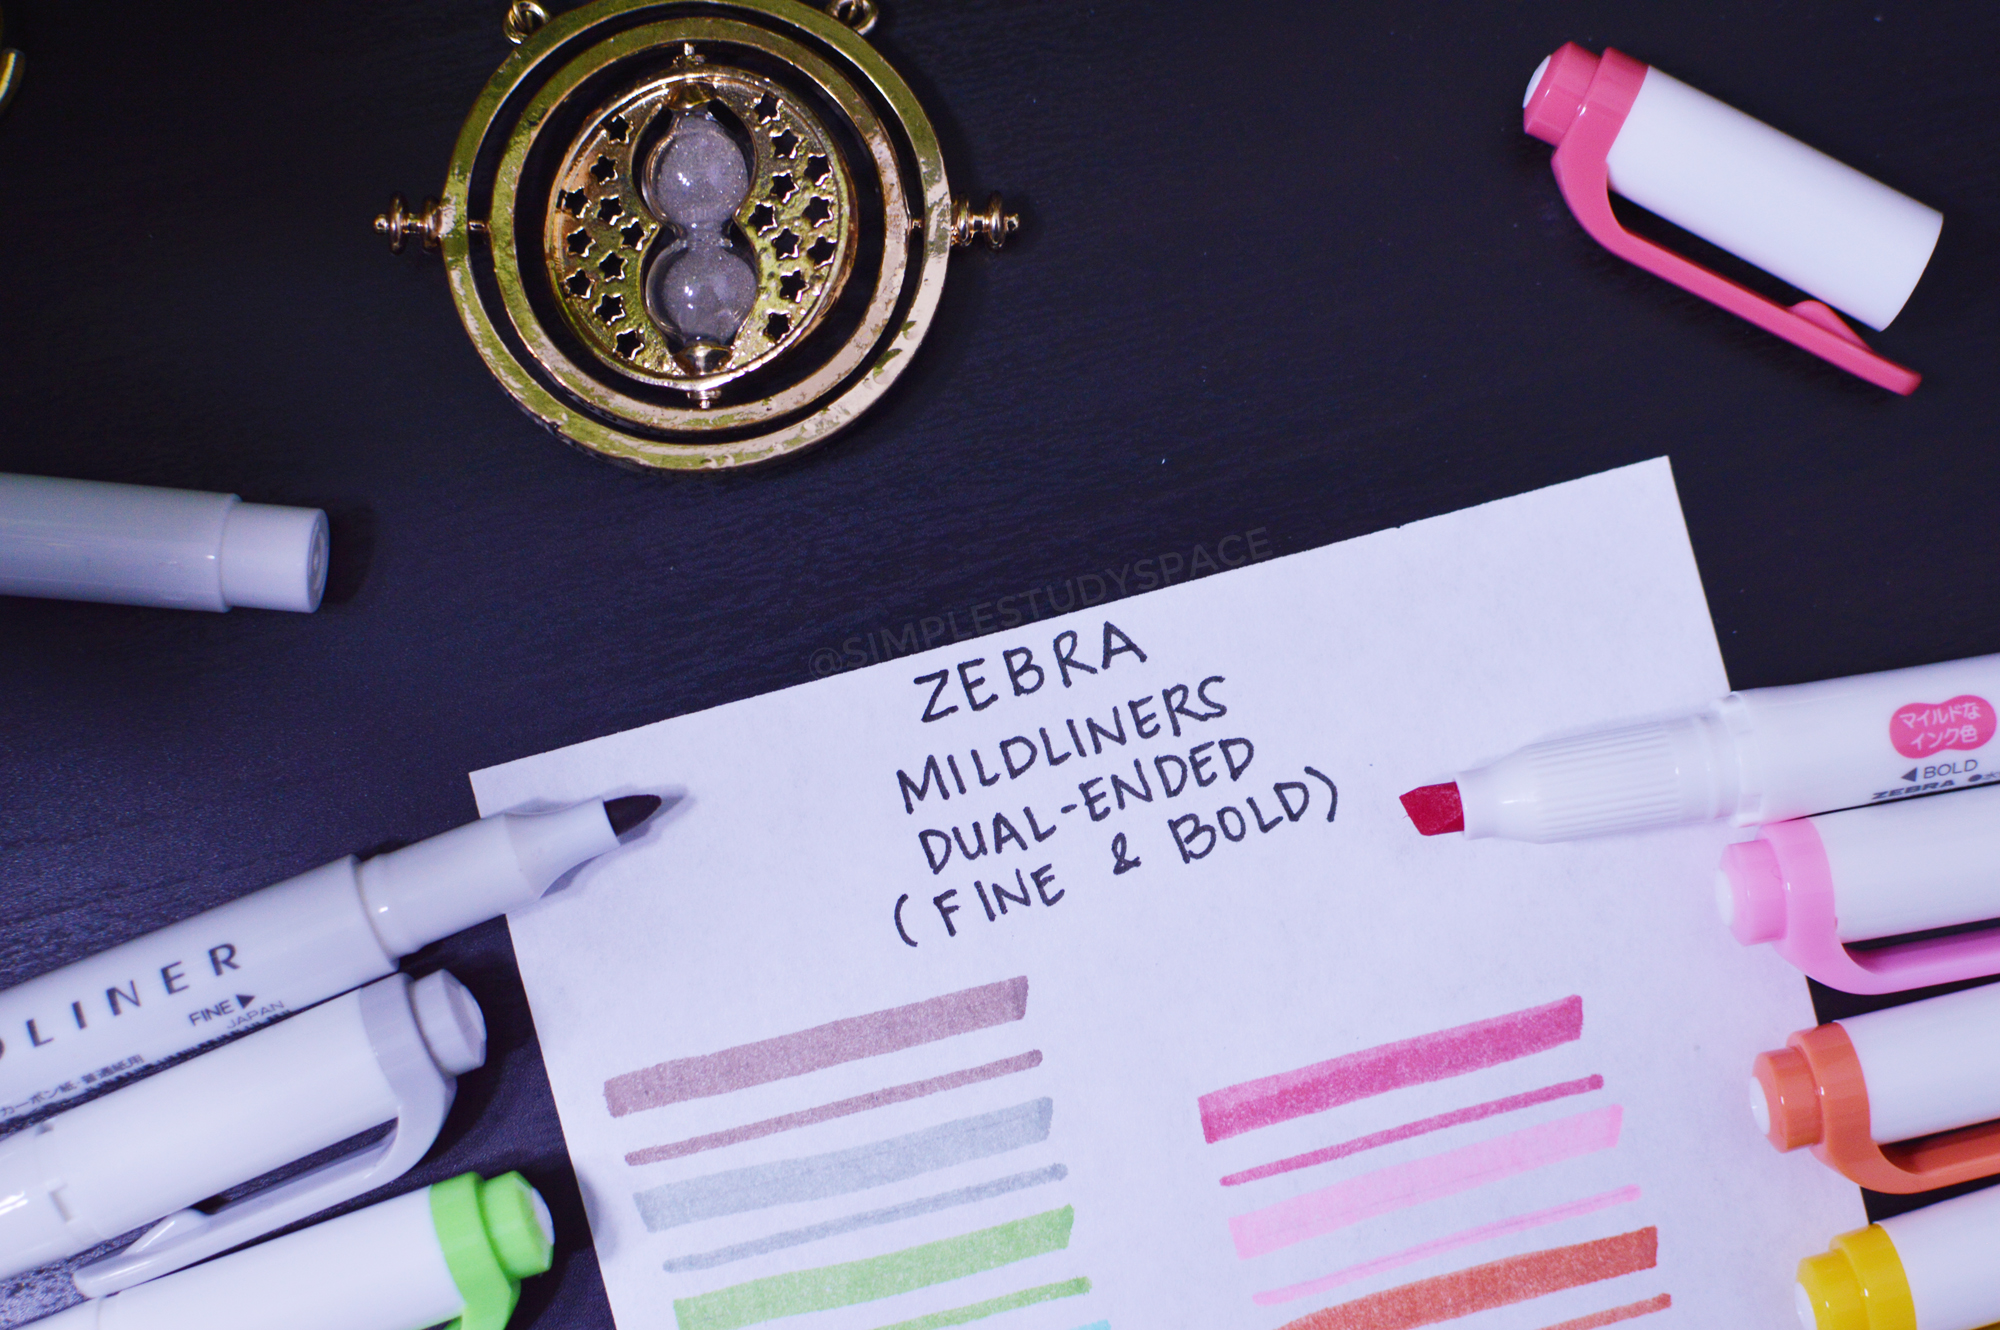 Pen Review: Zebra Mildliner Double Ended Highlighter